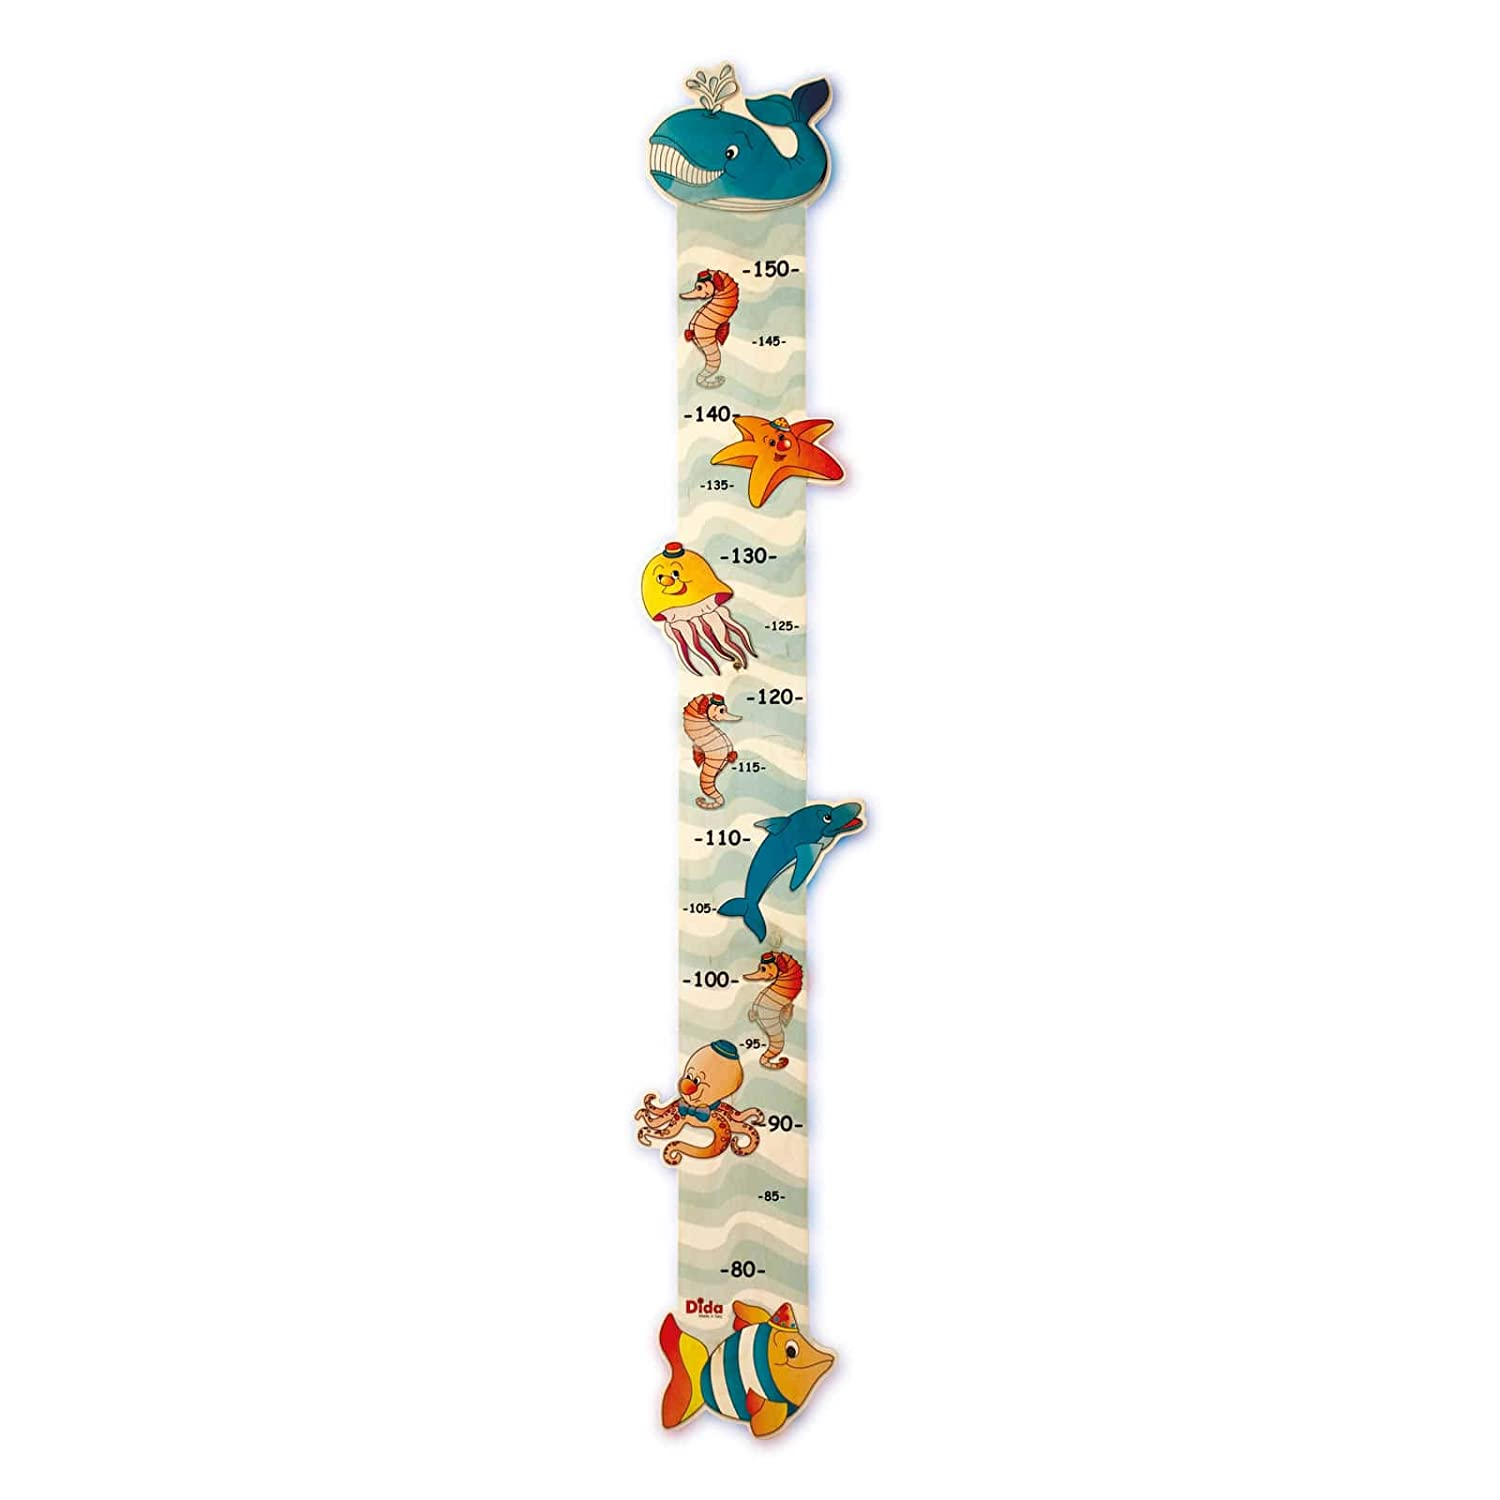 Dida - Wooden Growth Height Chart for Kids - Sea Animals